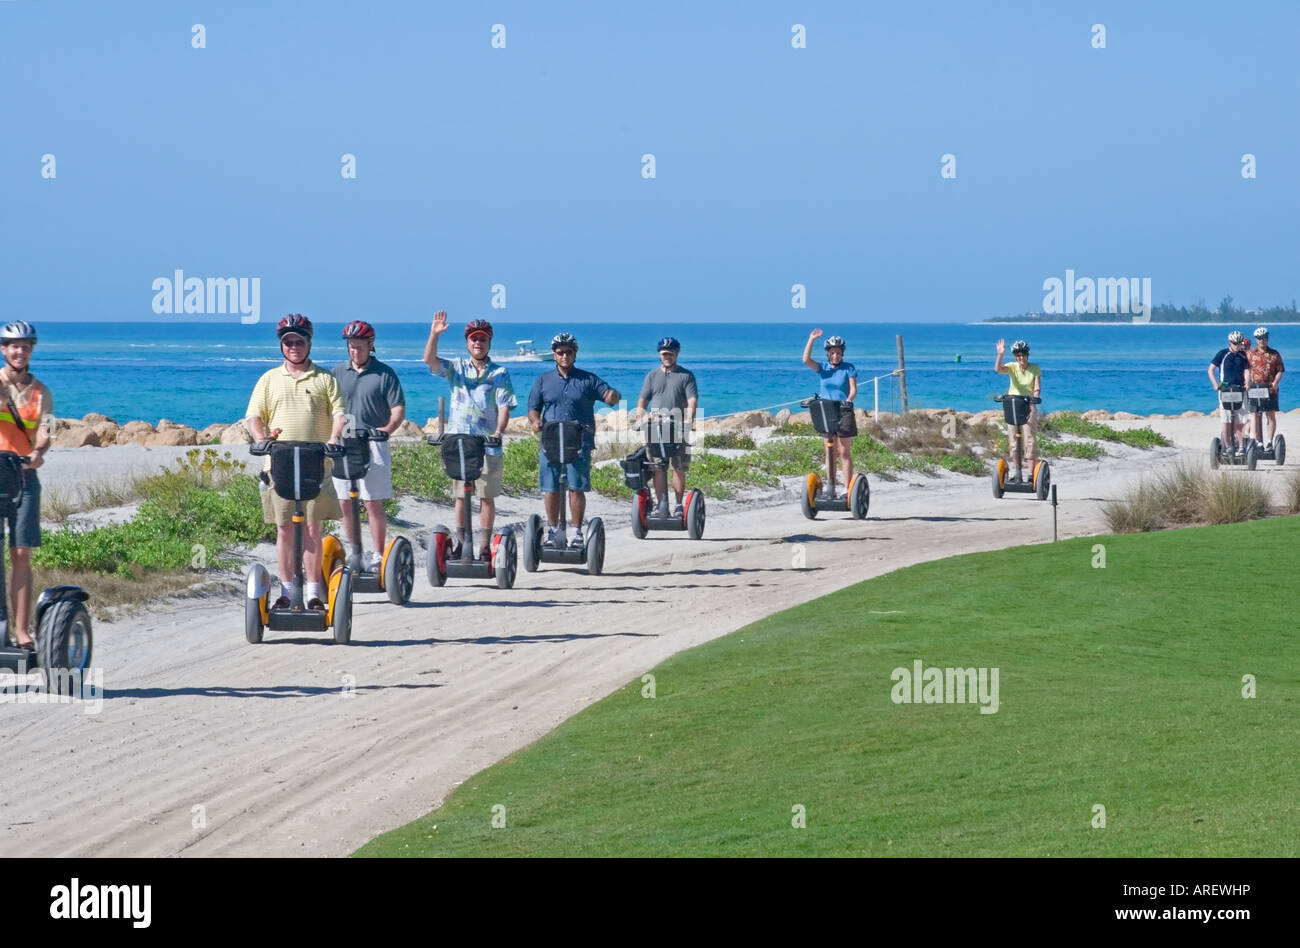 Tourist riding the Segway personal transport vehicle at a resort Stock Photo